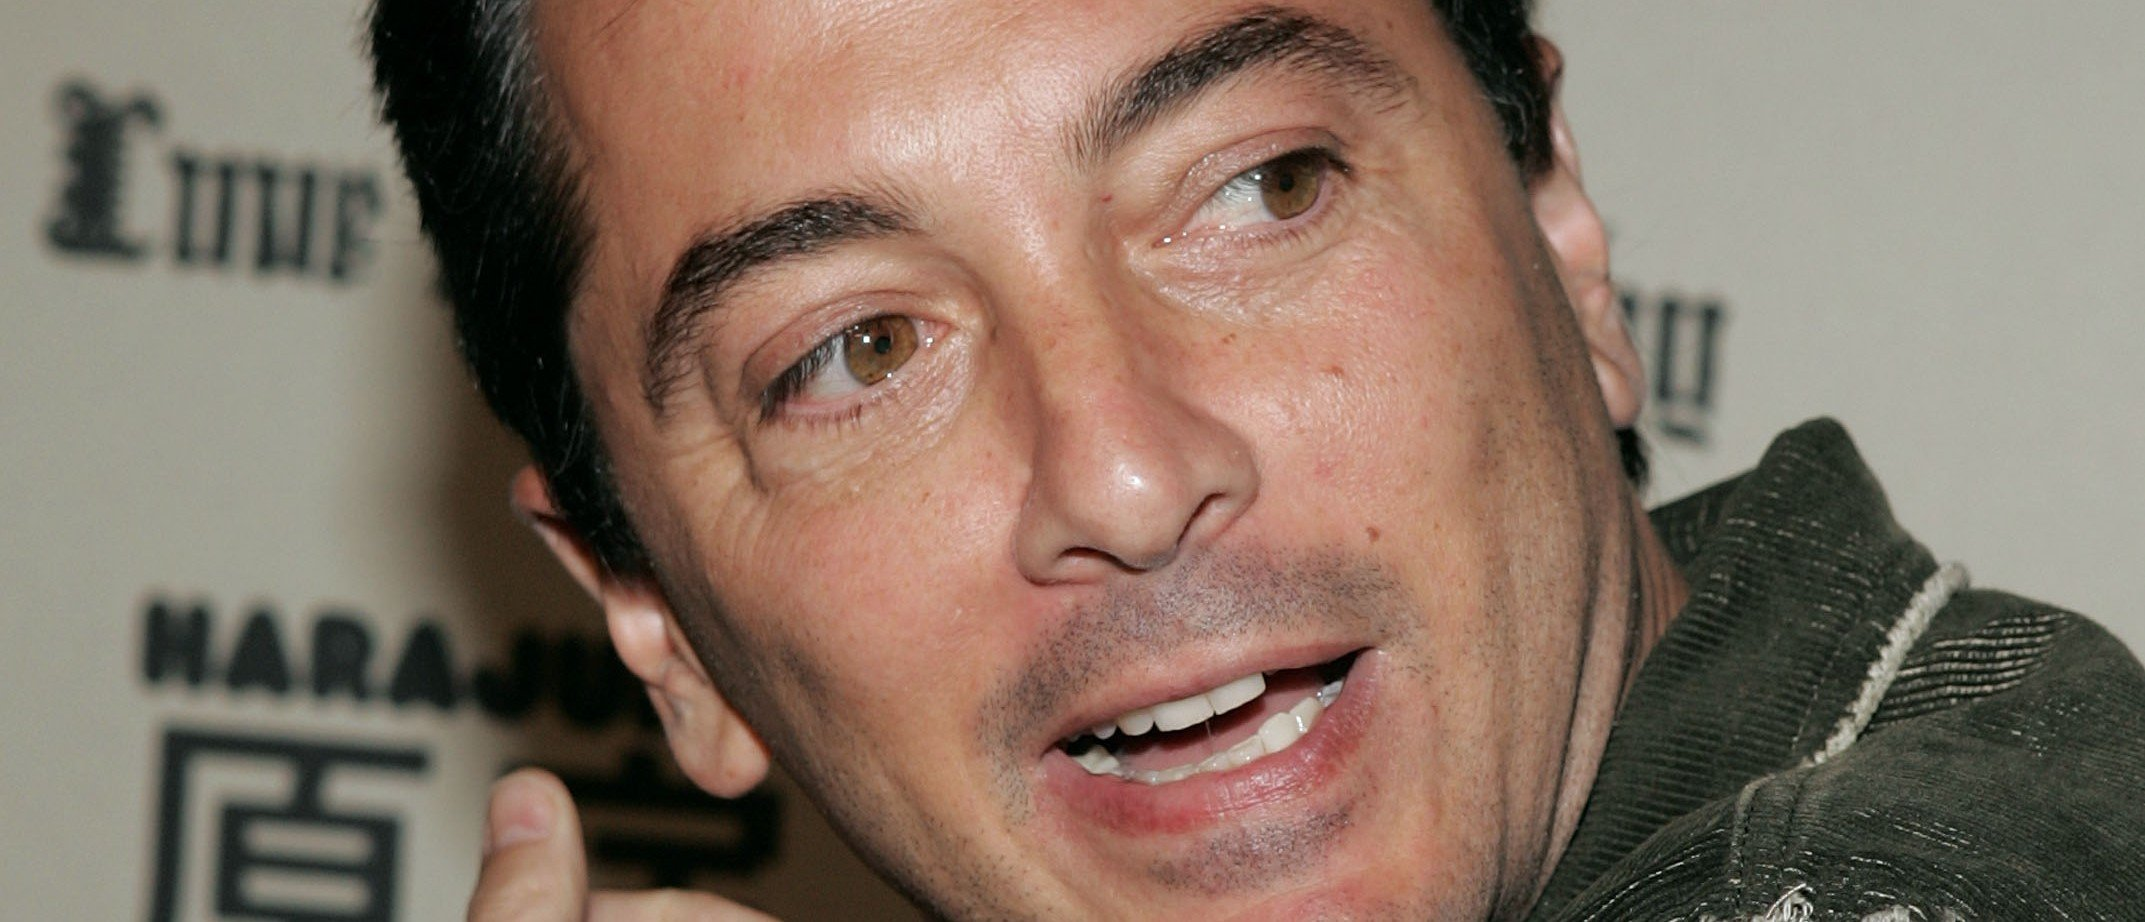 A barista refused to say Donald Trump's name when Scott Baio ordered it.